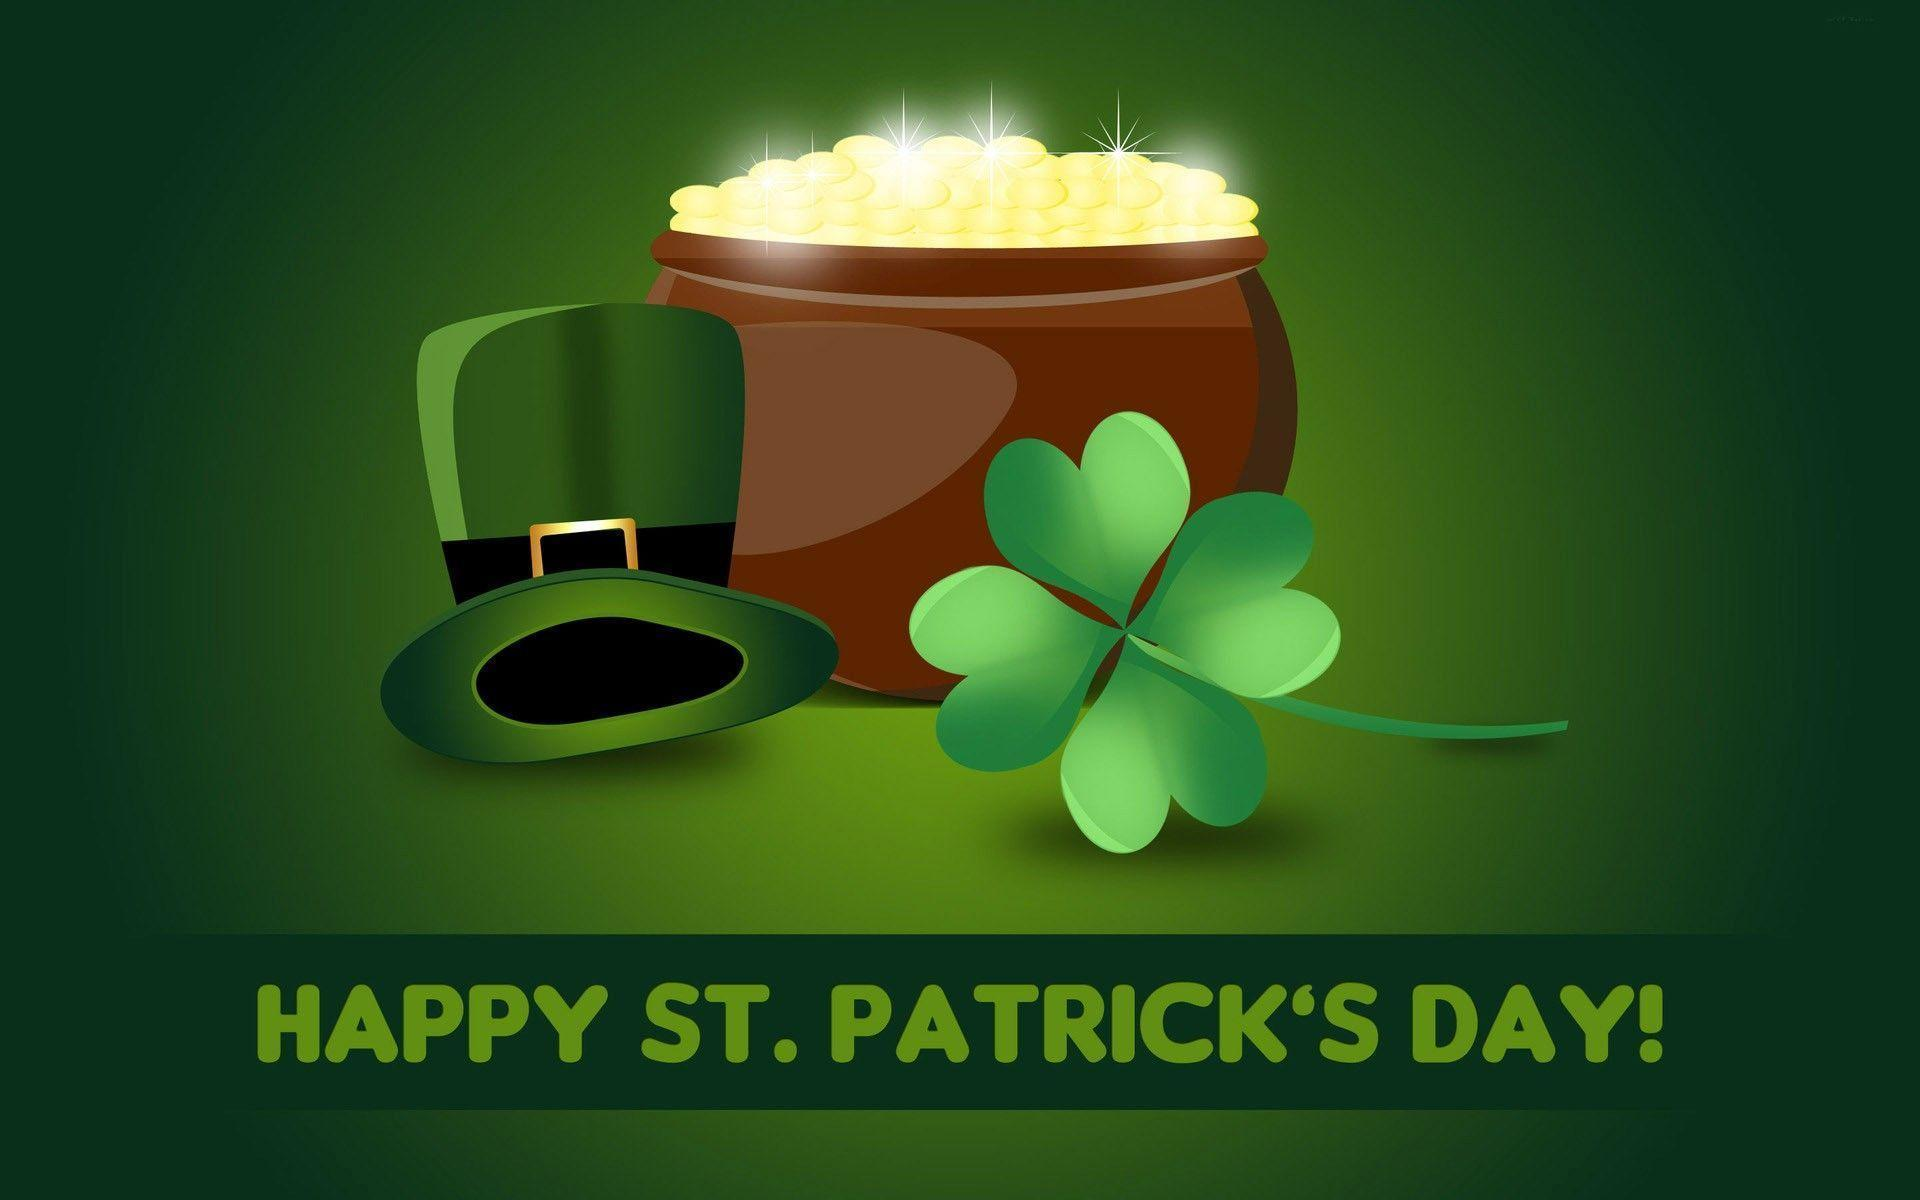 Happy st patricks day holiday greetings wallpaper | Fine Wallpaperss